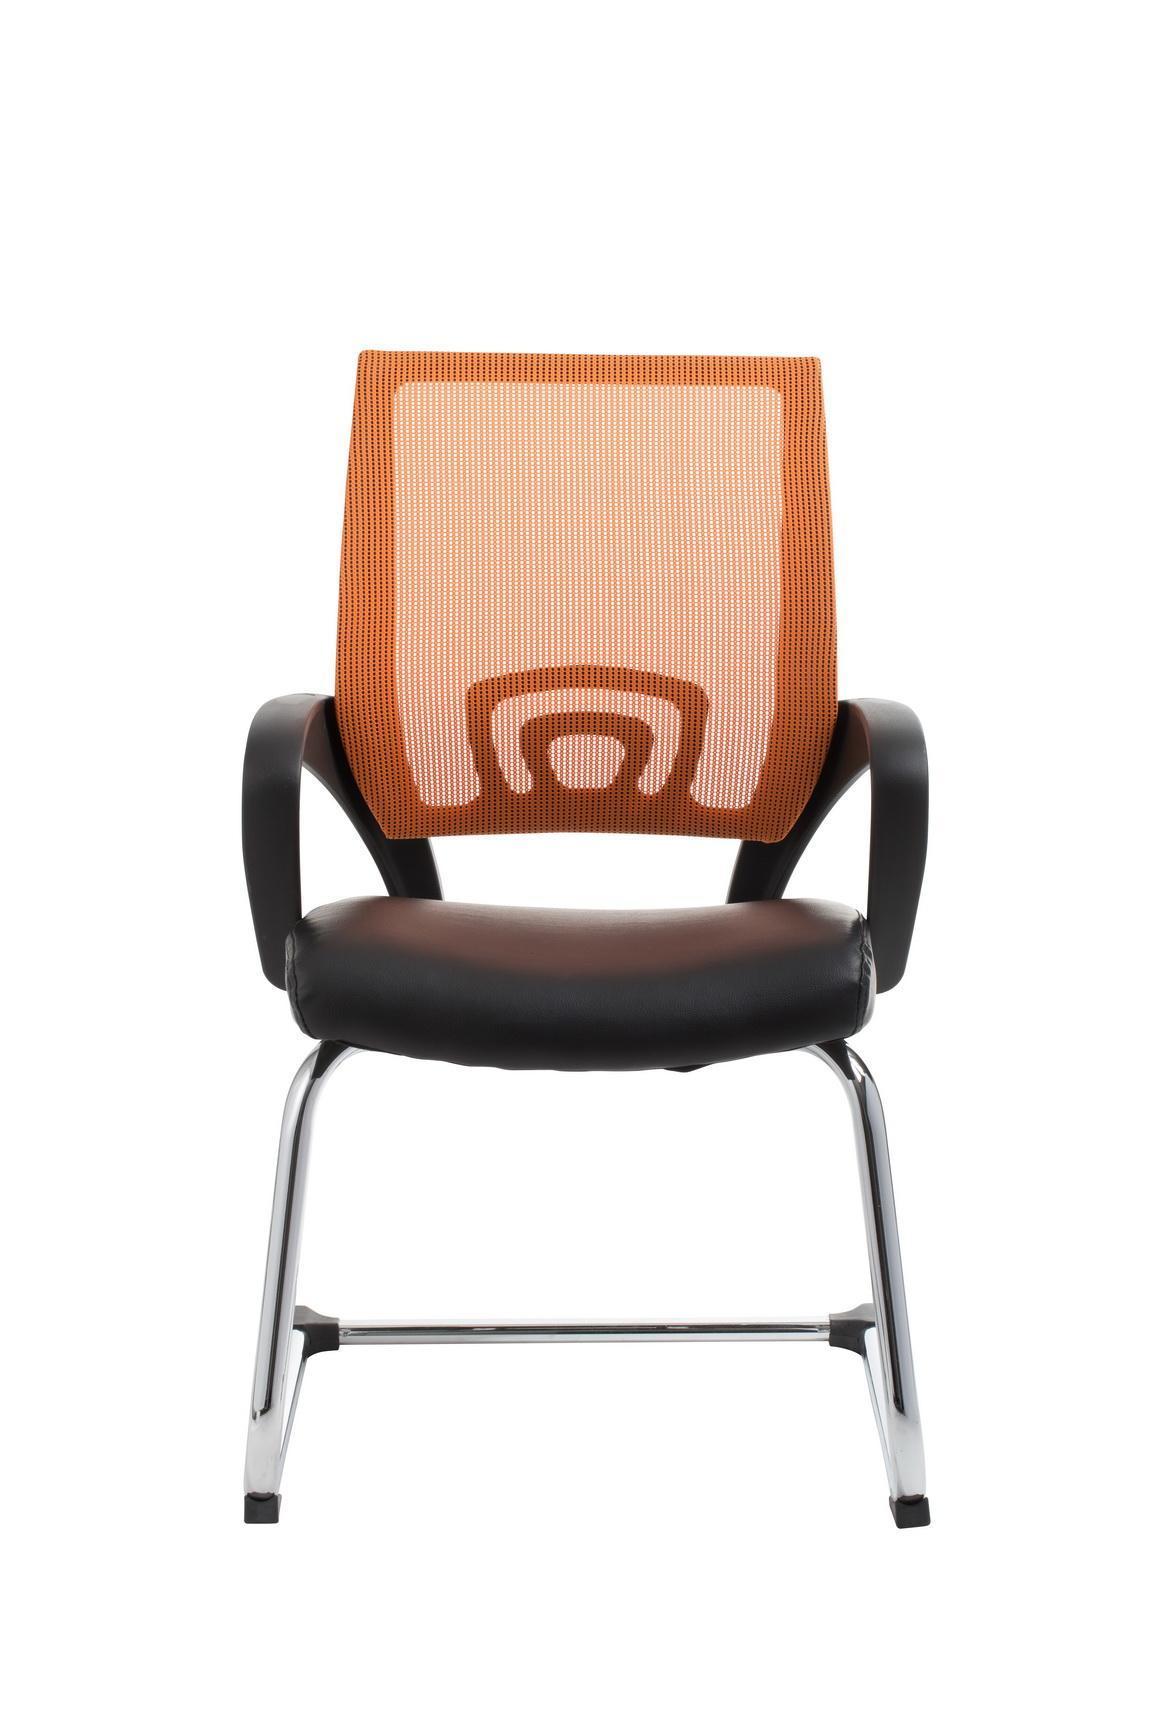 Orange Desk Chair View Visitor Chair In Orange Office Furniture Store